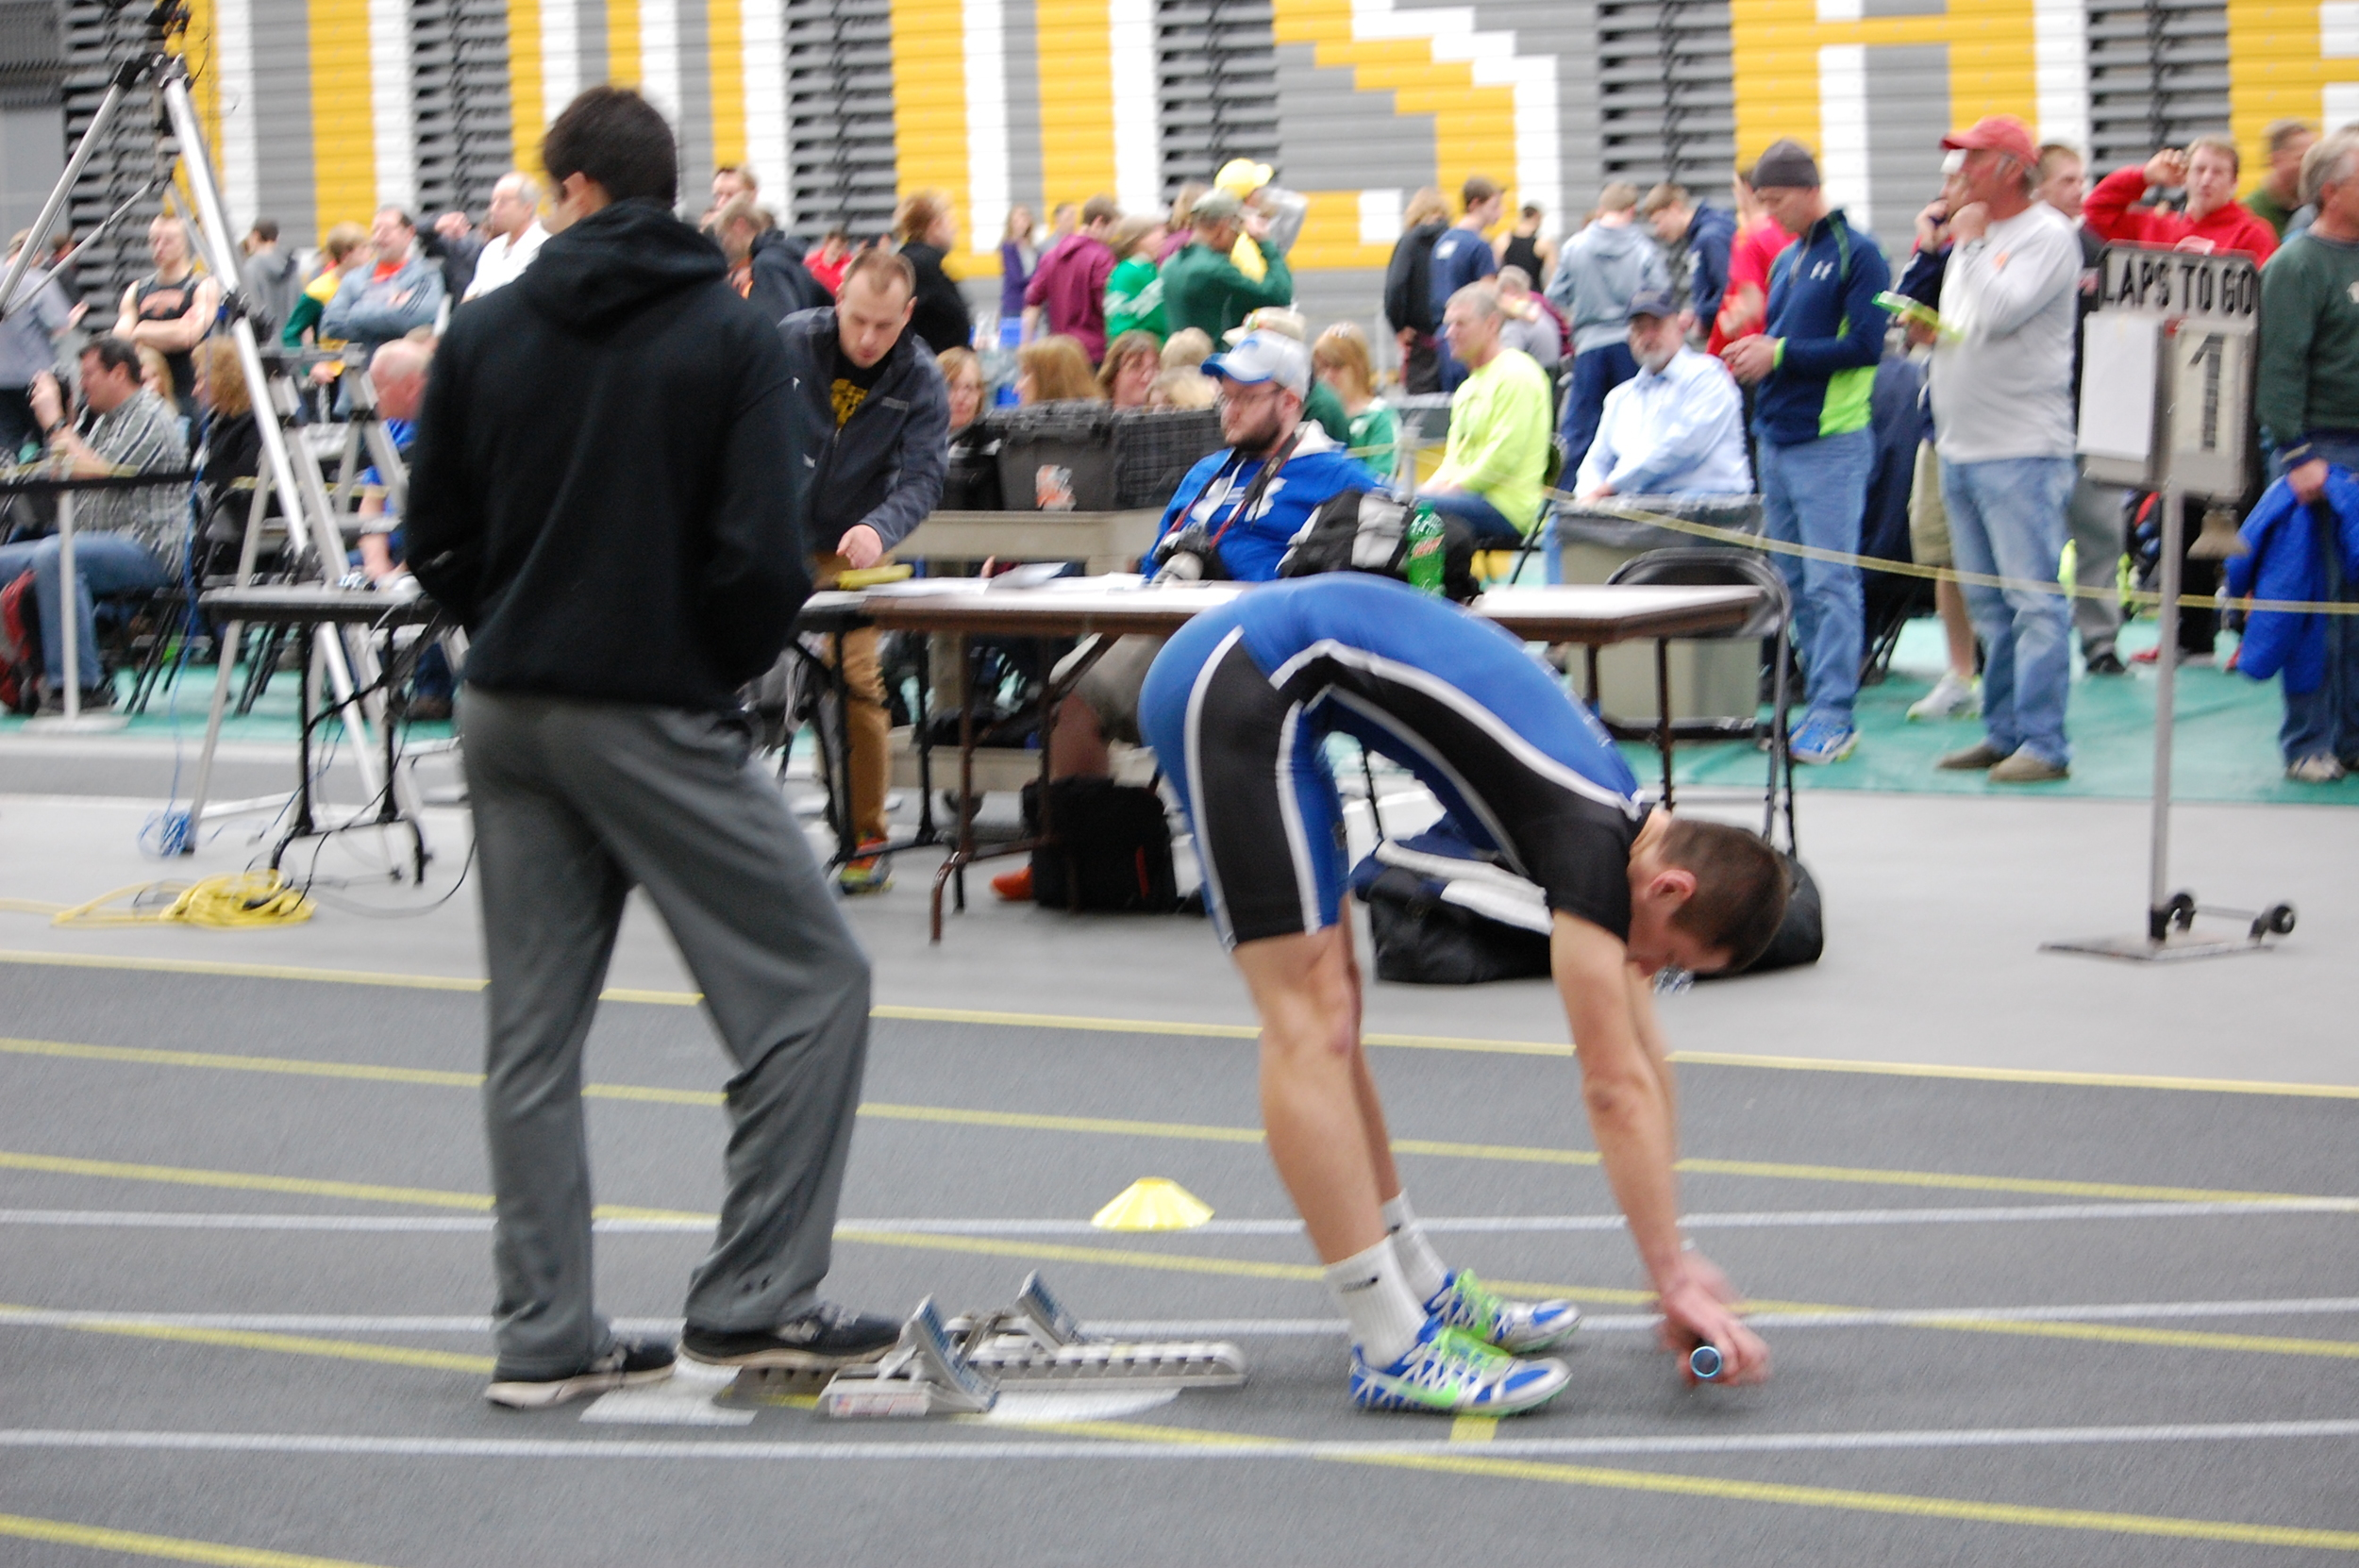 Isaiah Merrill stretches before getting ready for the 800 meter relay.